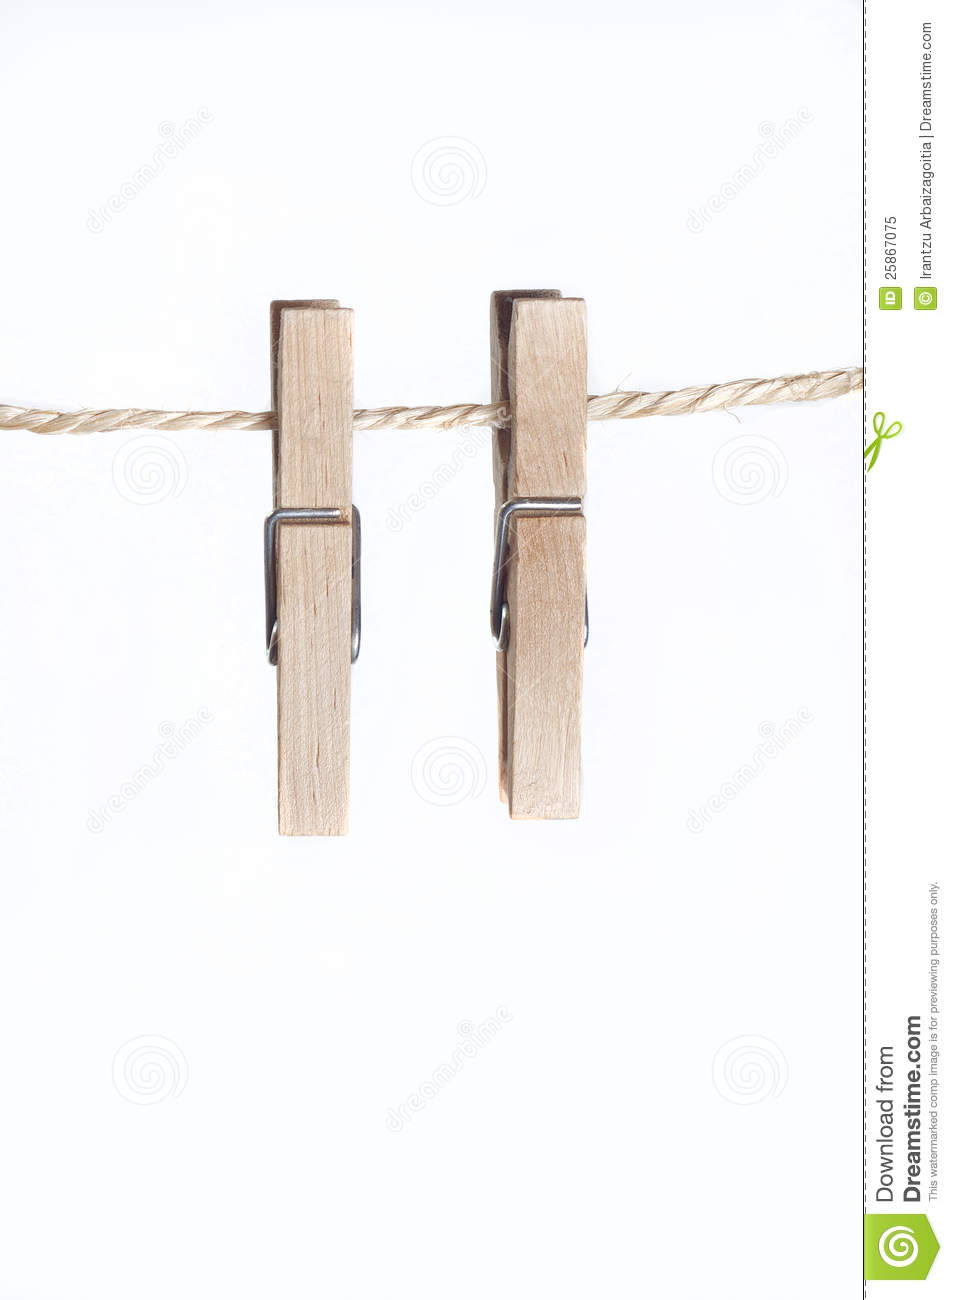 two clamps for laundry hanging on a string stock image image 25867075. Black Bedroom Furniture Sets. Home Design Ideas